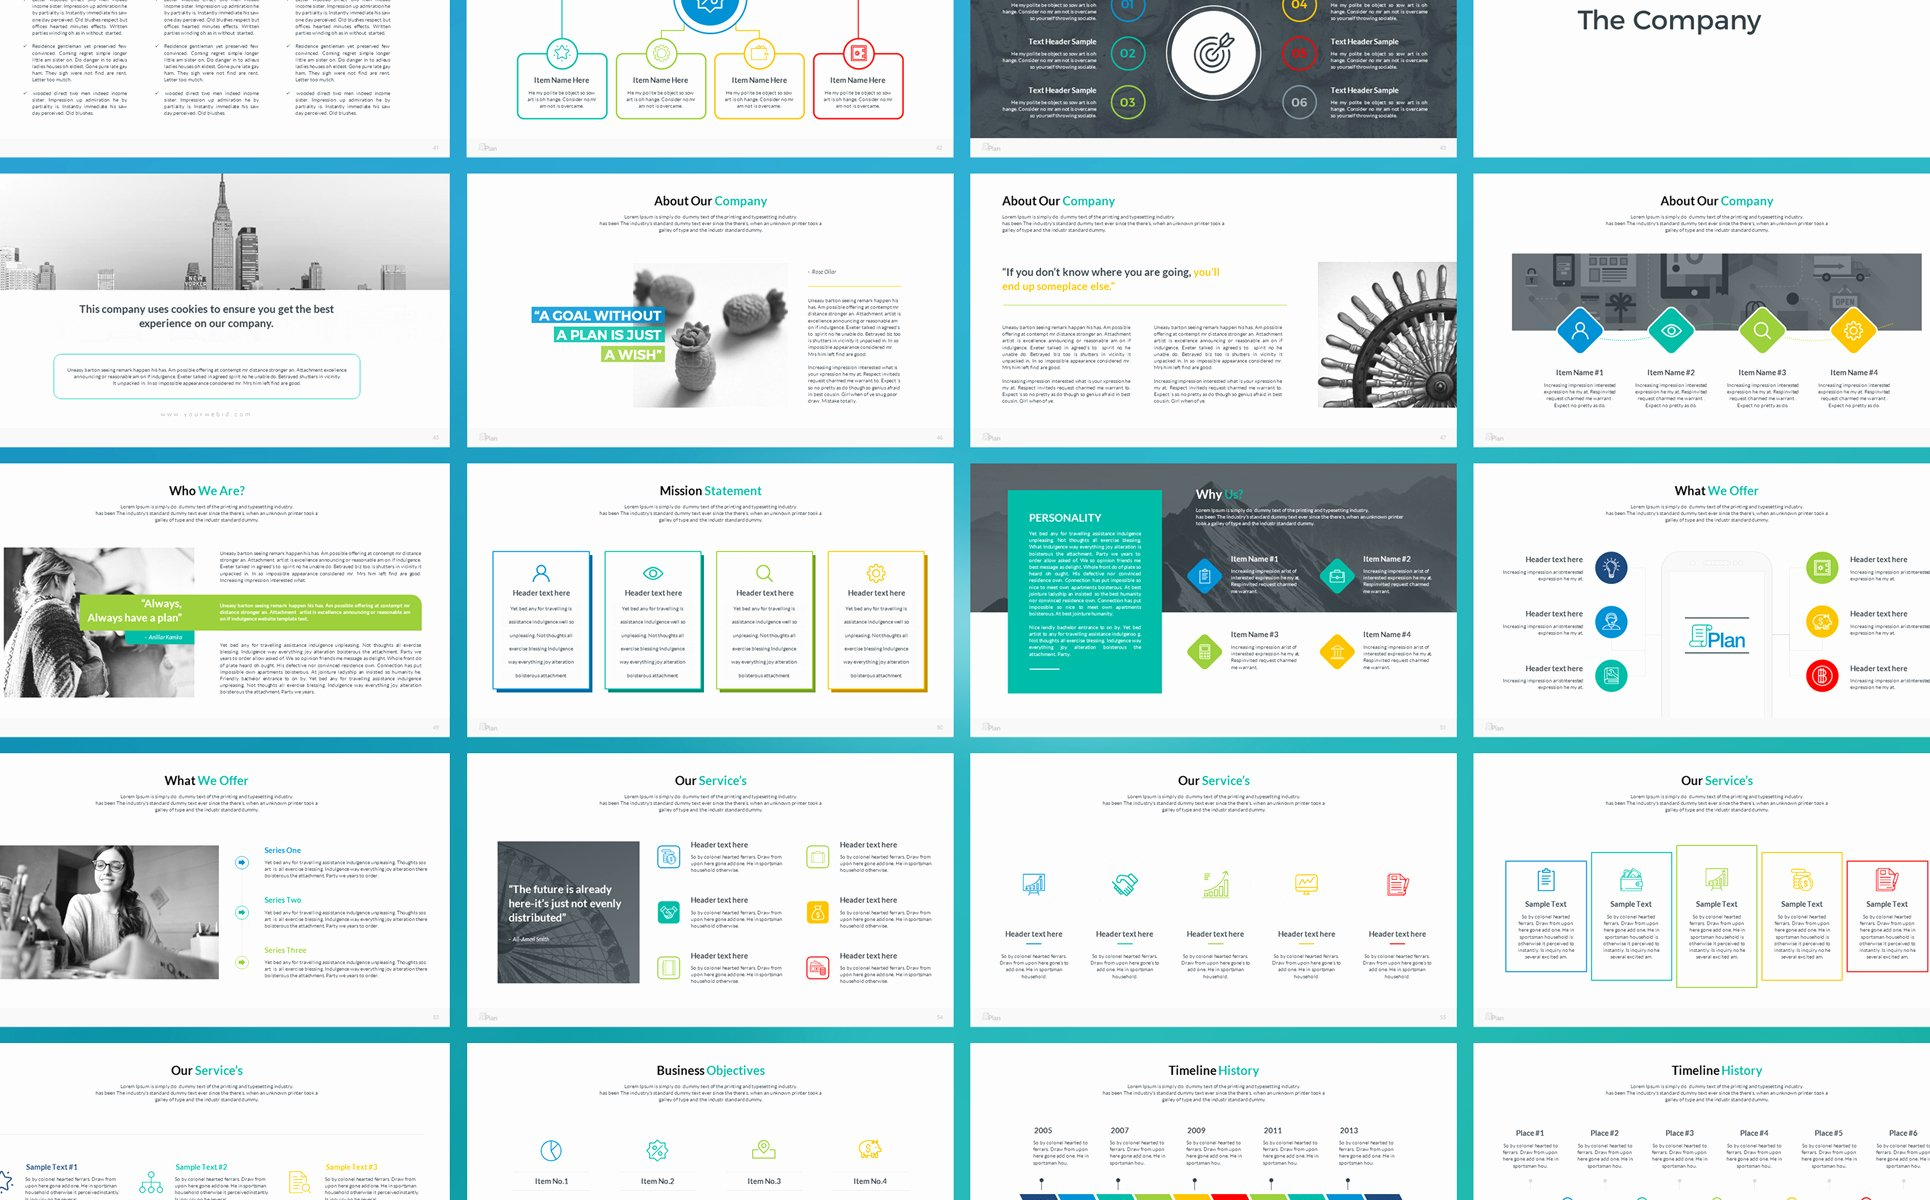 Business Plan Presentation Template Fresh Plan Business Plan & Infographic Powerpoint Template